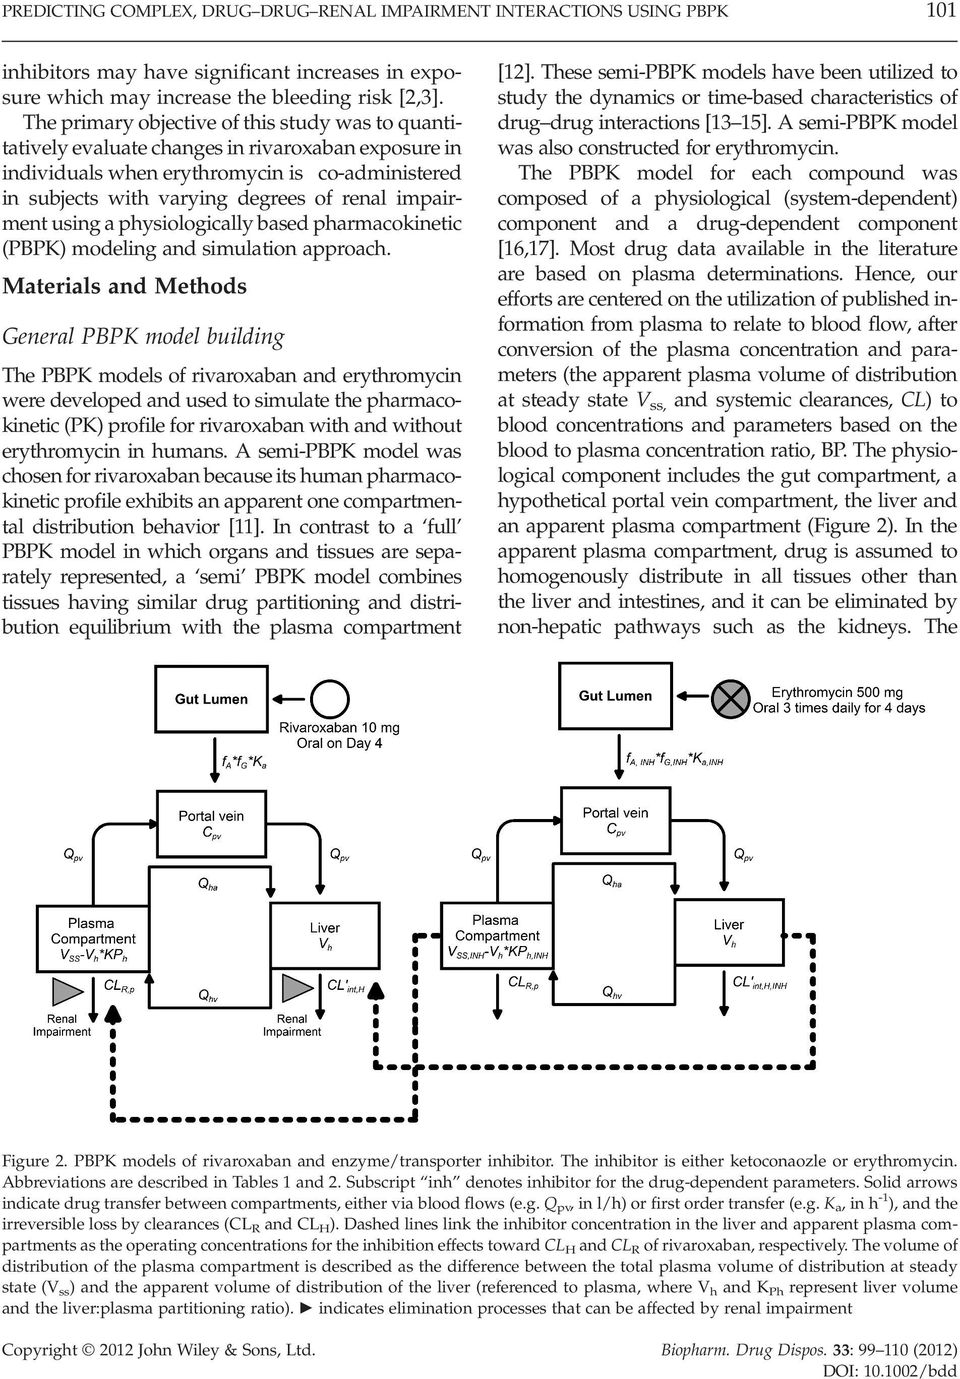 impairment using a physiologically based pharmacokinetic (PBPK) modeling and simulation approach.